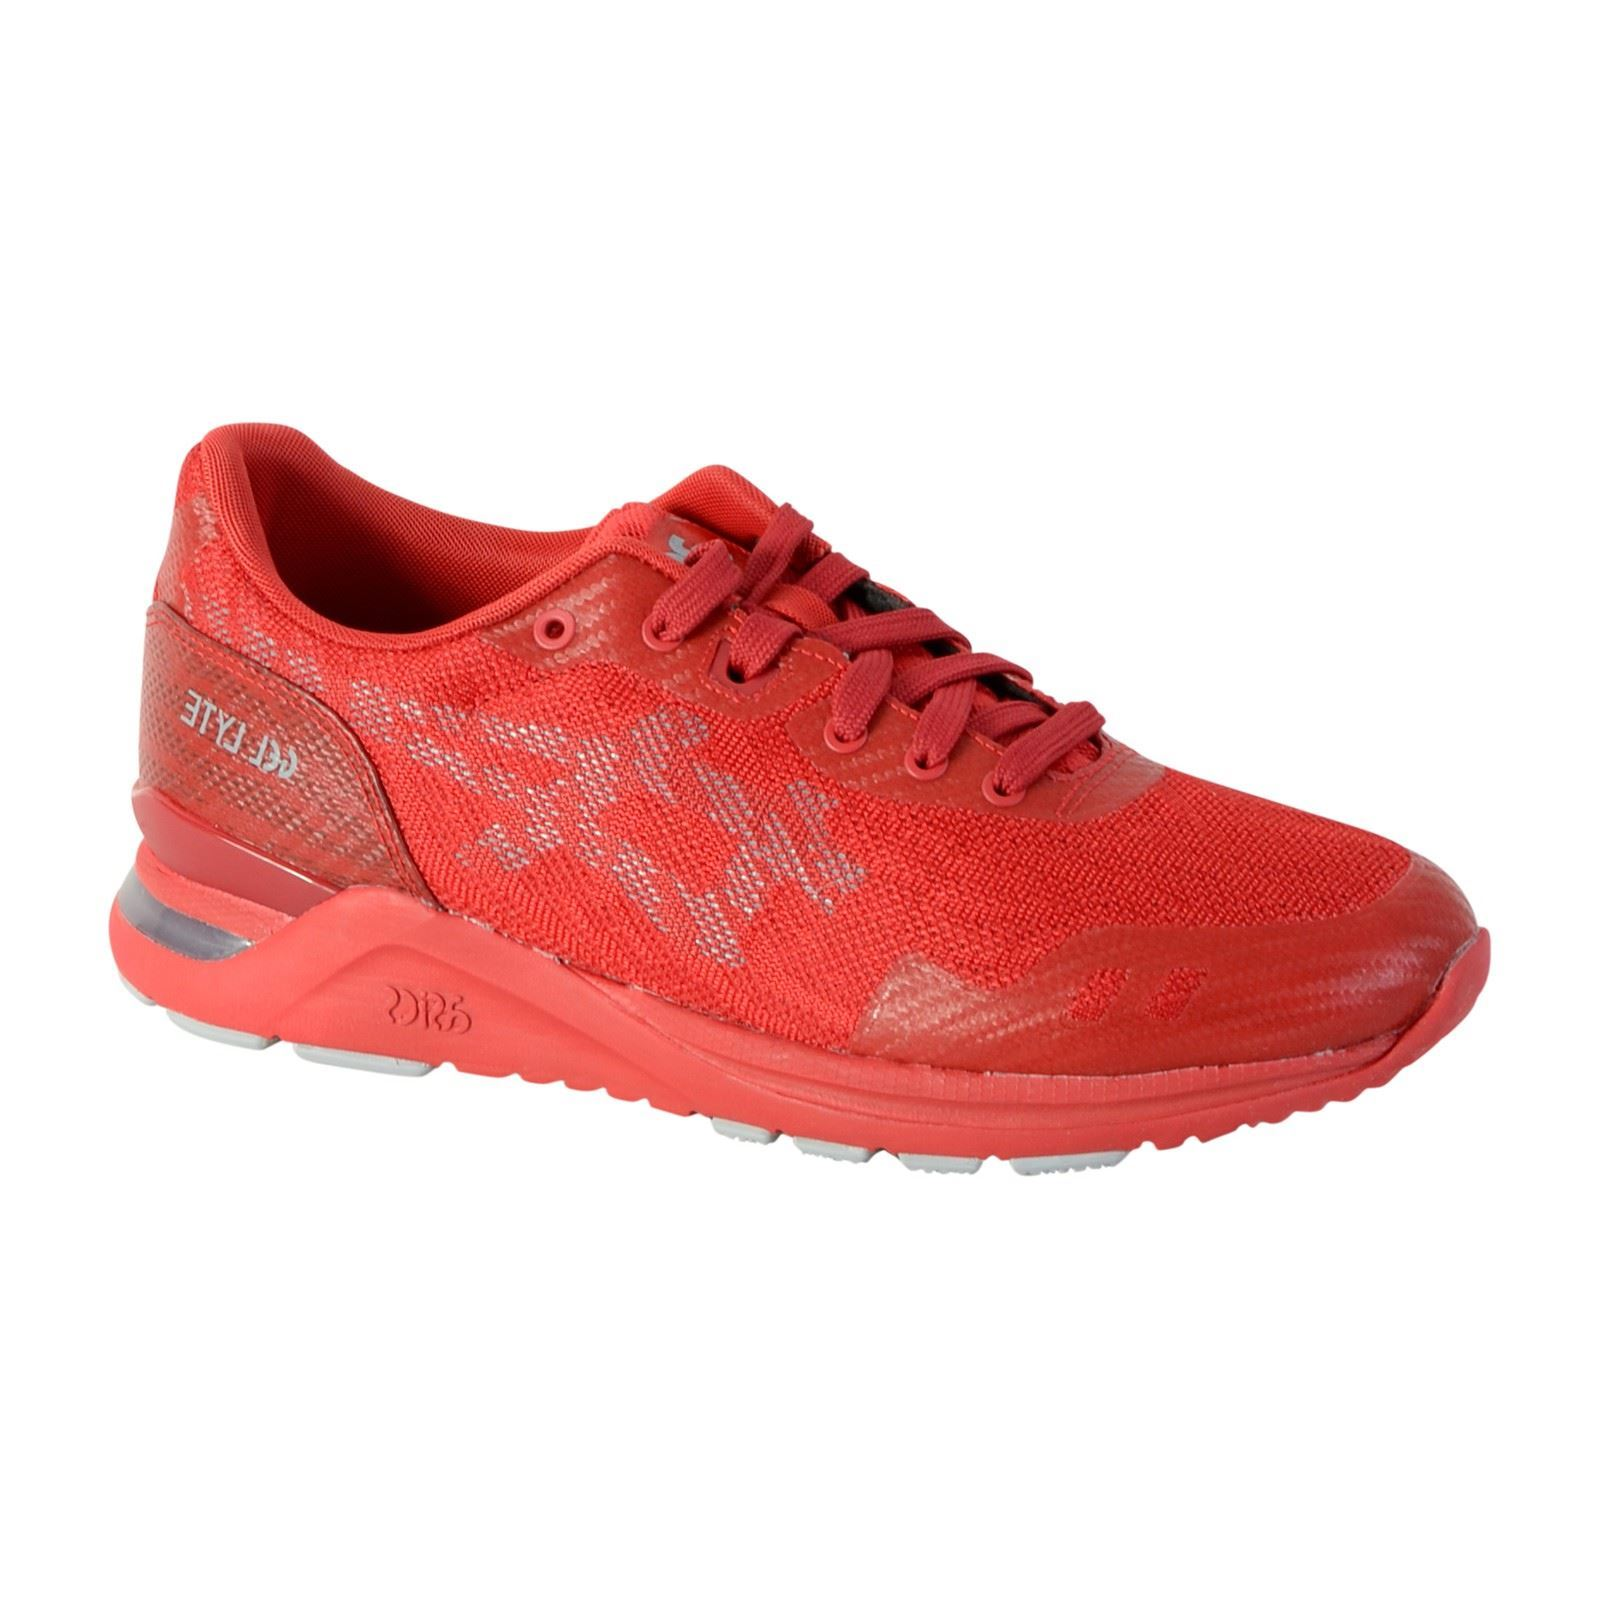 design intemporel 0d8ea bc890 Gel-lyte evo nt - Baskets montantes - rouge